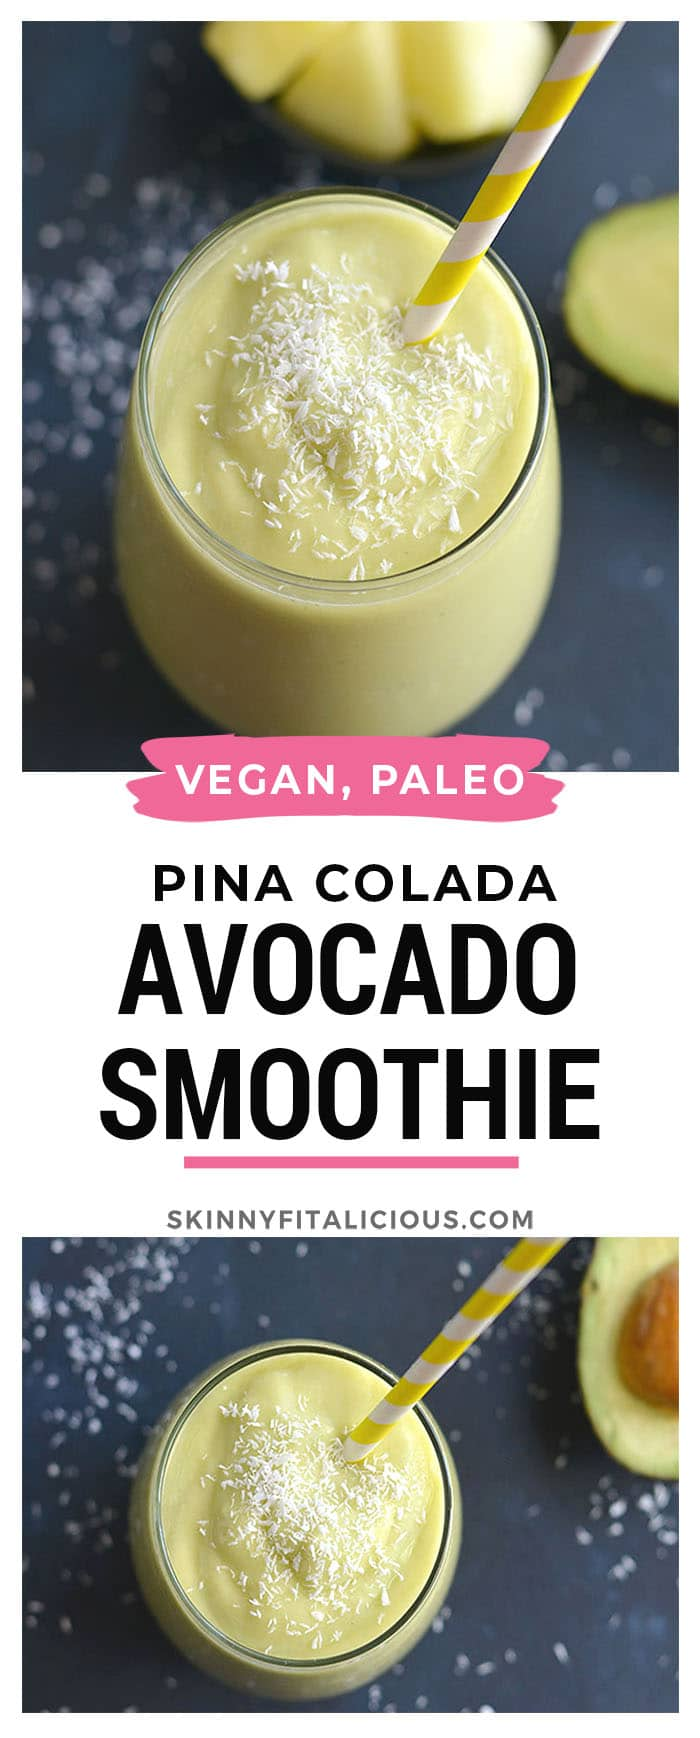 This Piña Colada Avocado Smoothie is a great way to start the day! Packed with fiber, Vitamin C and antioxidants this energizing drink is easy to blend up ahead of time or in the morning. Paleo + Vegan + Gluten Free + Low Calorie